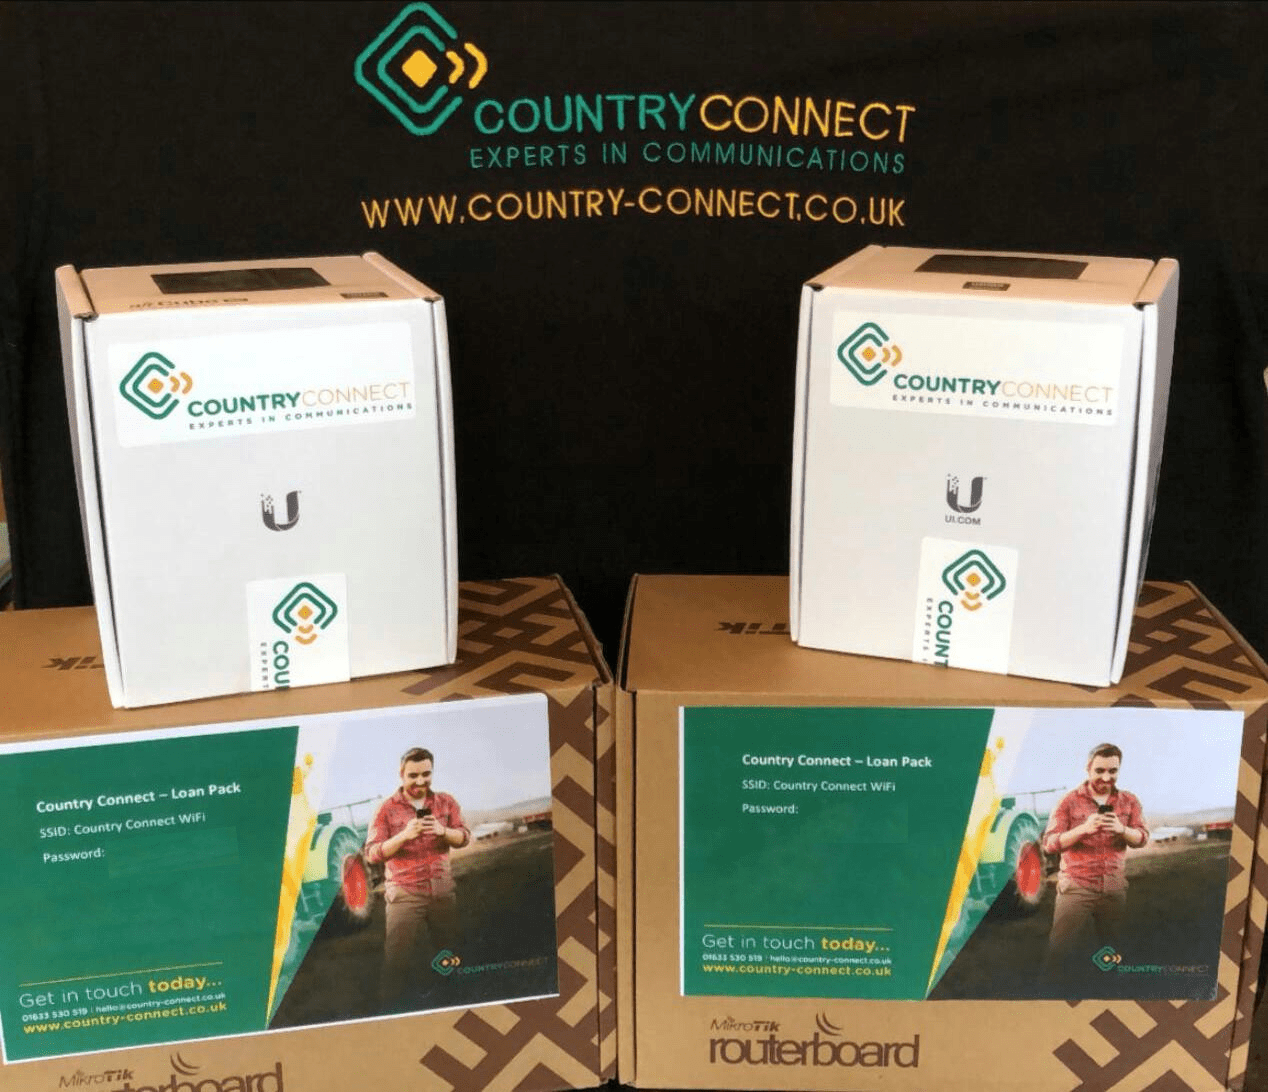 Country Connect - What Does the Country Connect Equipment Do?